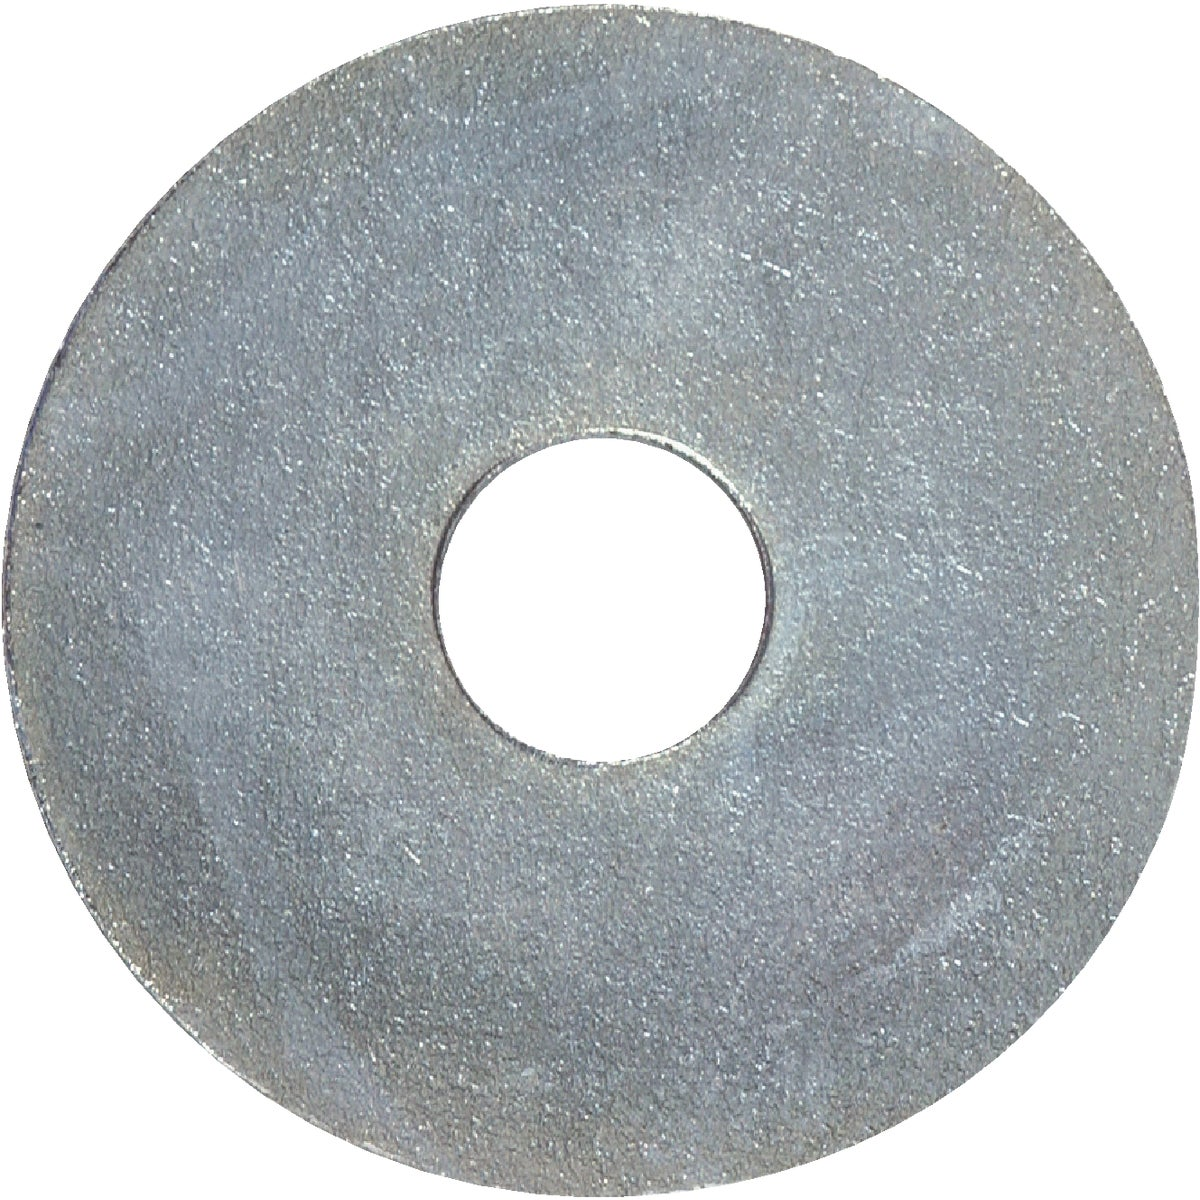 1/4X2 FENDER WASHER - 290021 by Hillman Fastener